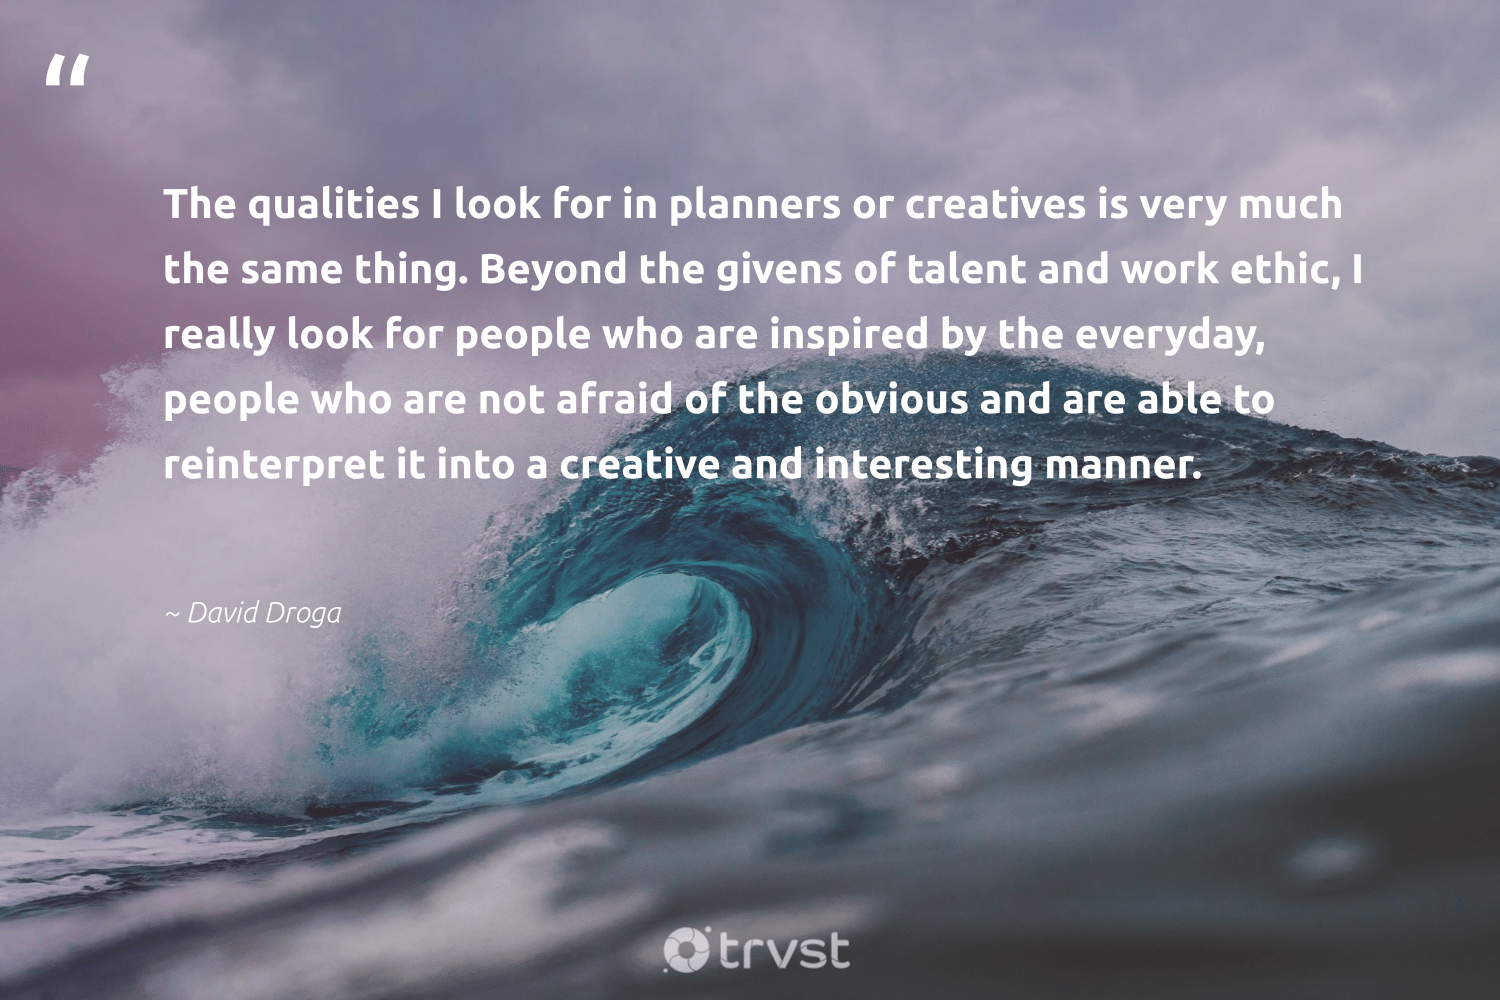 """The qualities I look for in planners or creatives is very much the same thing. Beyond the givens of talent and work ethic, I really look for people who are inspired by the everyday, people who are not afraid of the obvious and are able to reinterpret it into a creative and interesting manner.""  - David Droga #trvst #quotes #creativity #talent #creative #illustration #softskills #begreat #beinspired #design #nevergiveup #futureofwork"